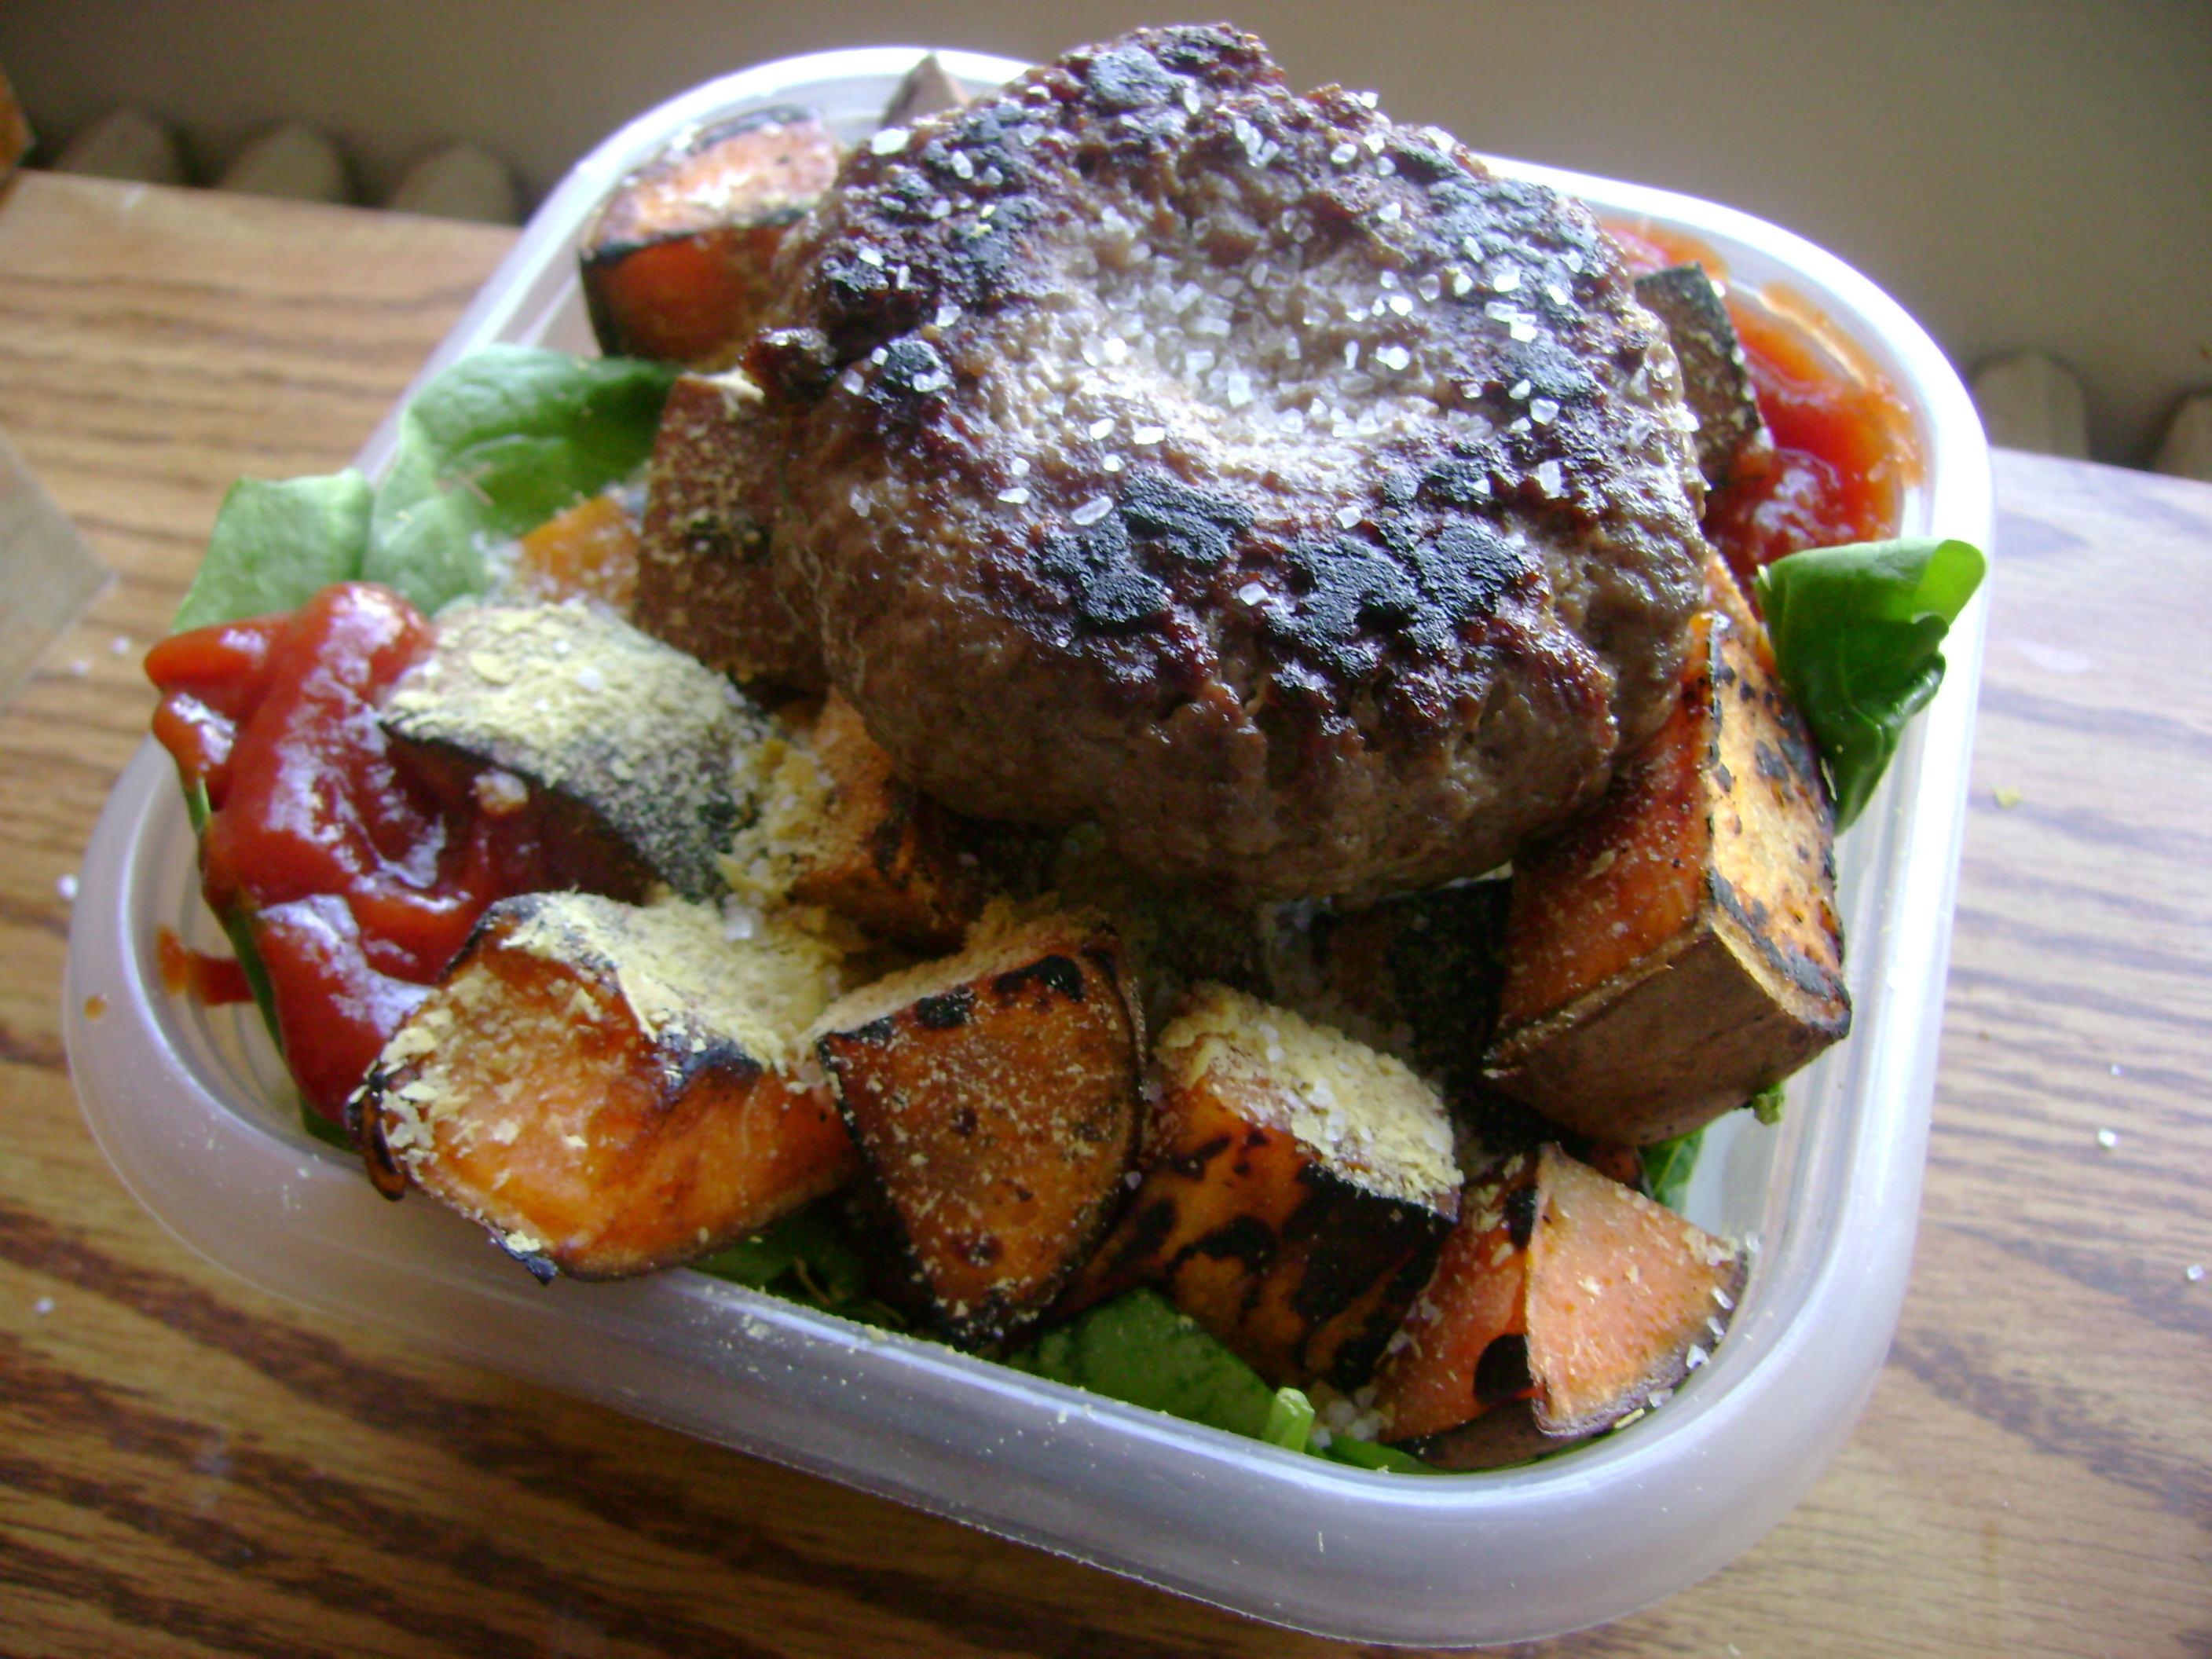 Burger Bowl With Spinach, Sweet Potatoes, And Nutritional Yeast